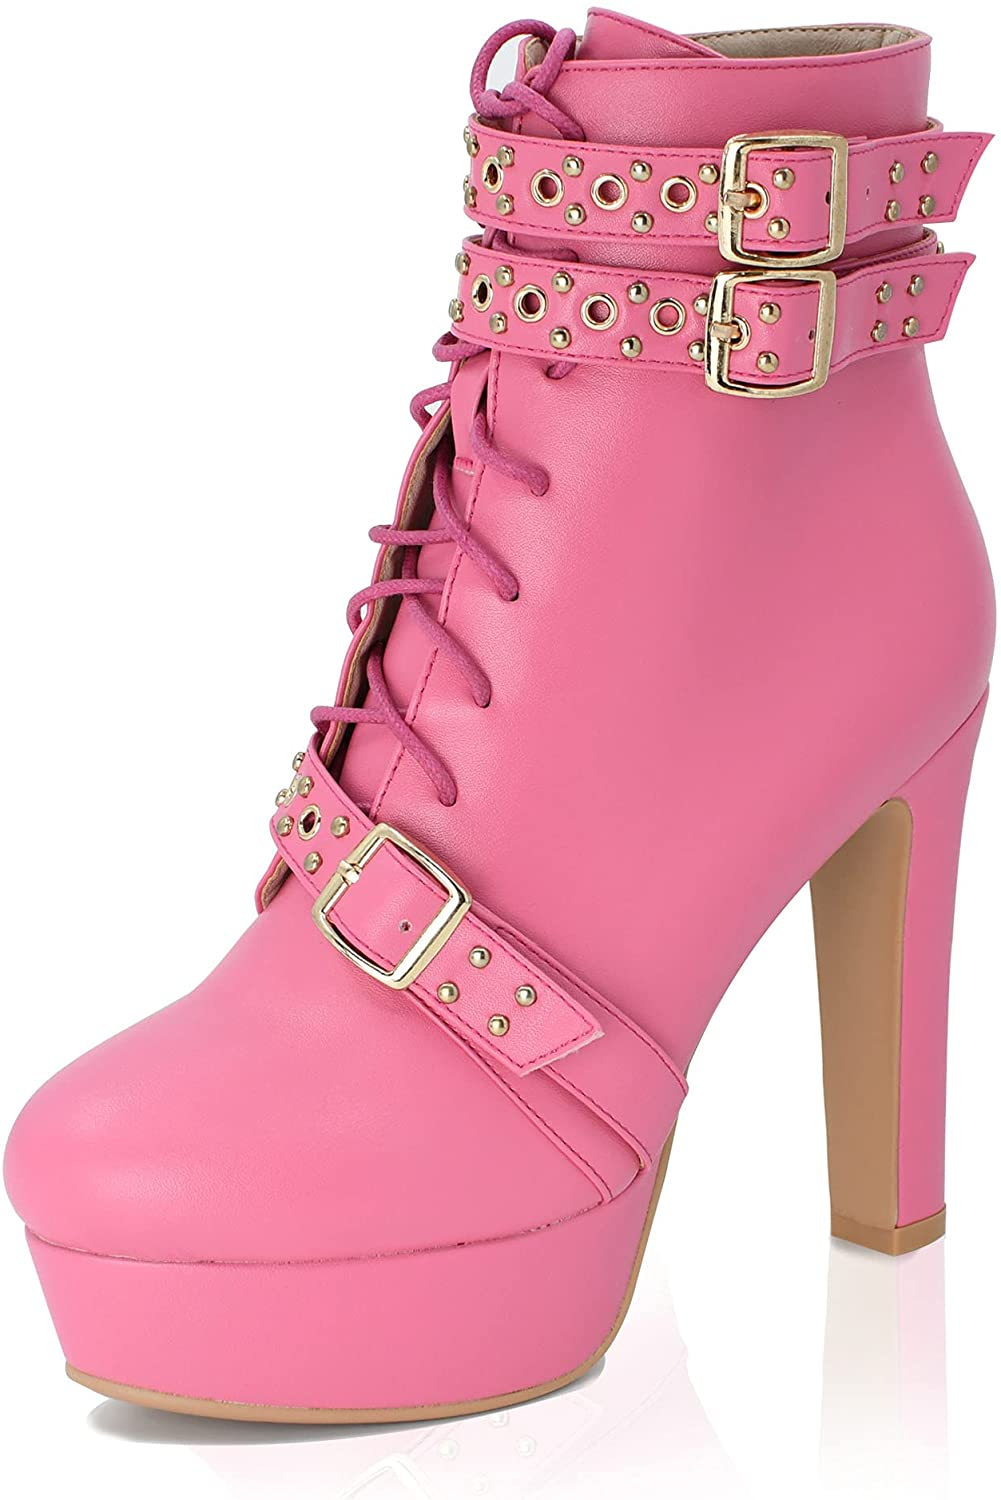 ORIPALLA Lace Up Platform High Heels Our shop OFFers the best service for Toe Women Bootie Round Max 70% OFF